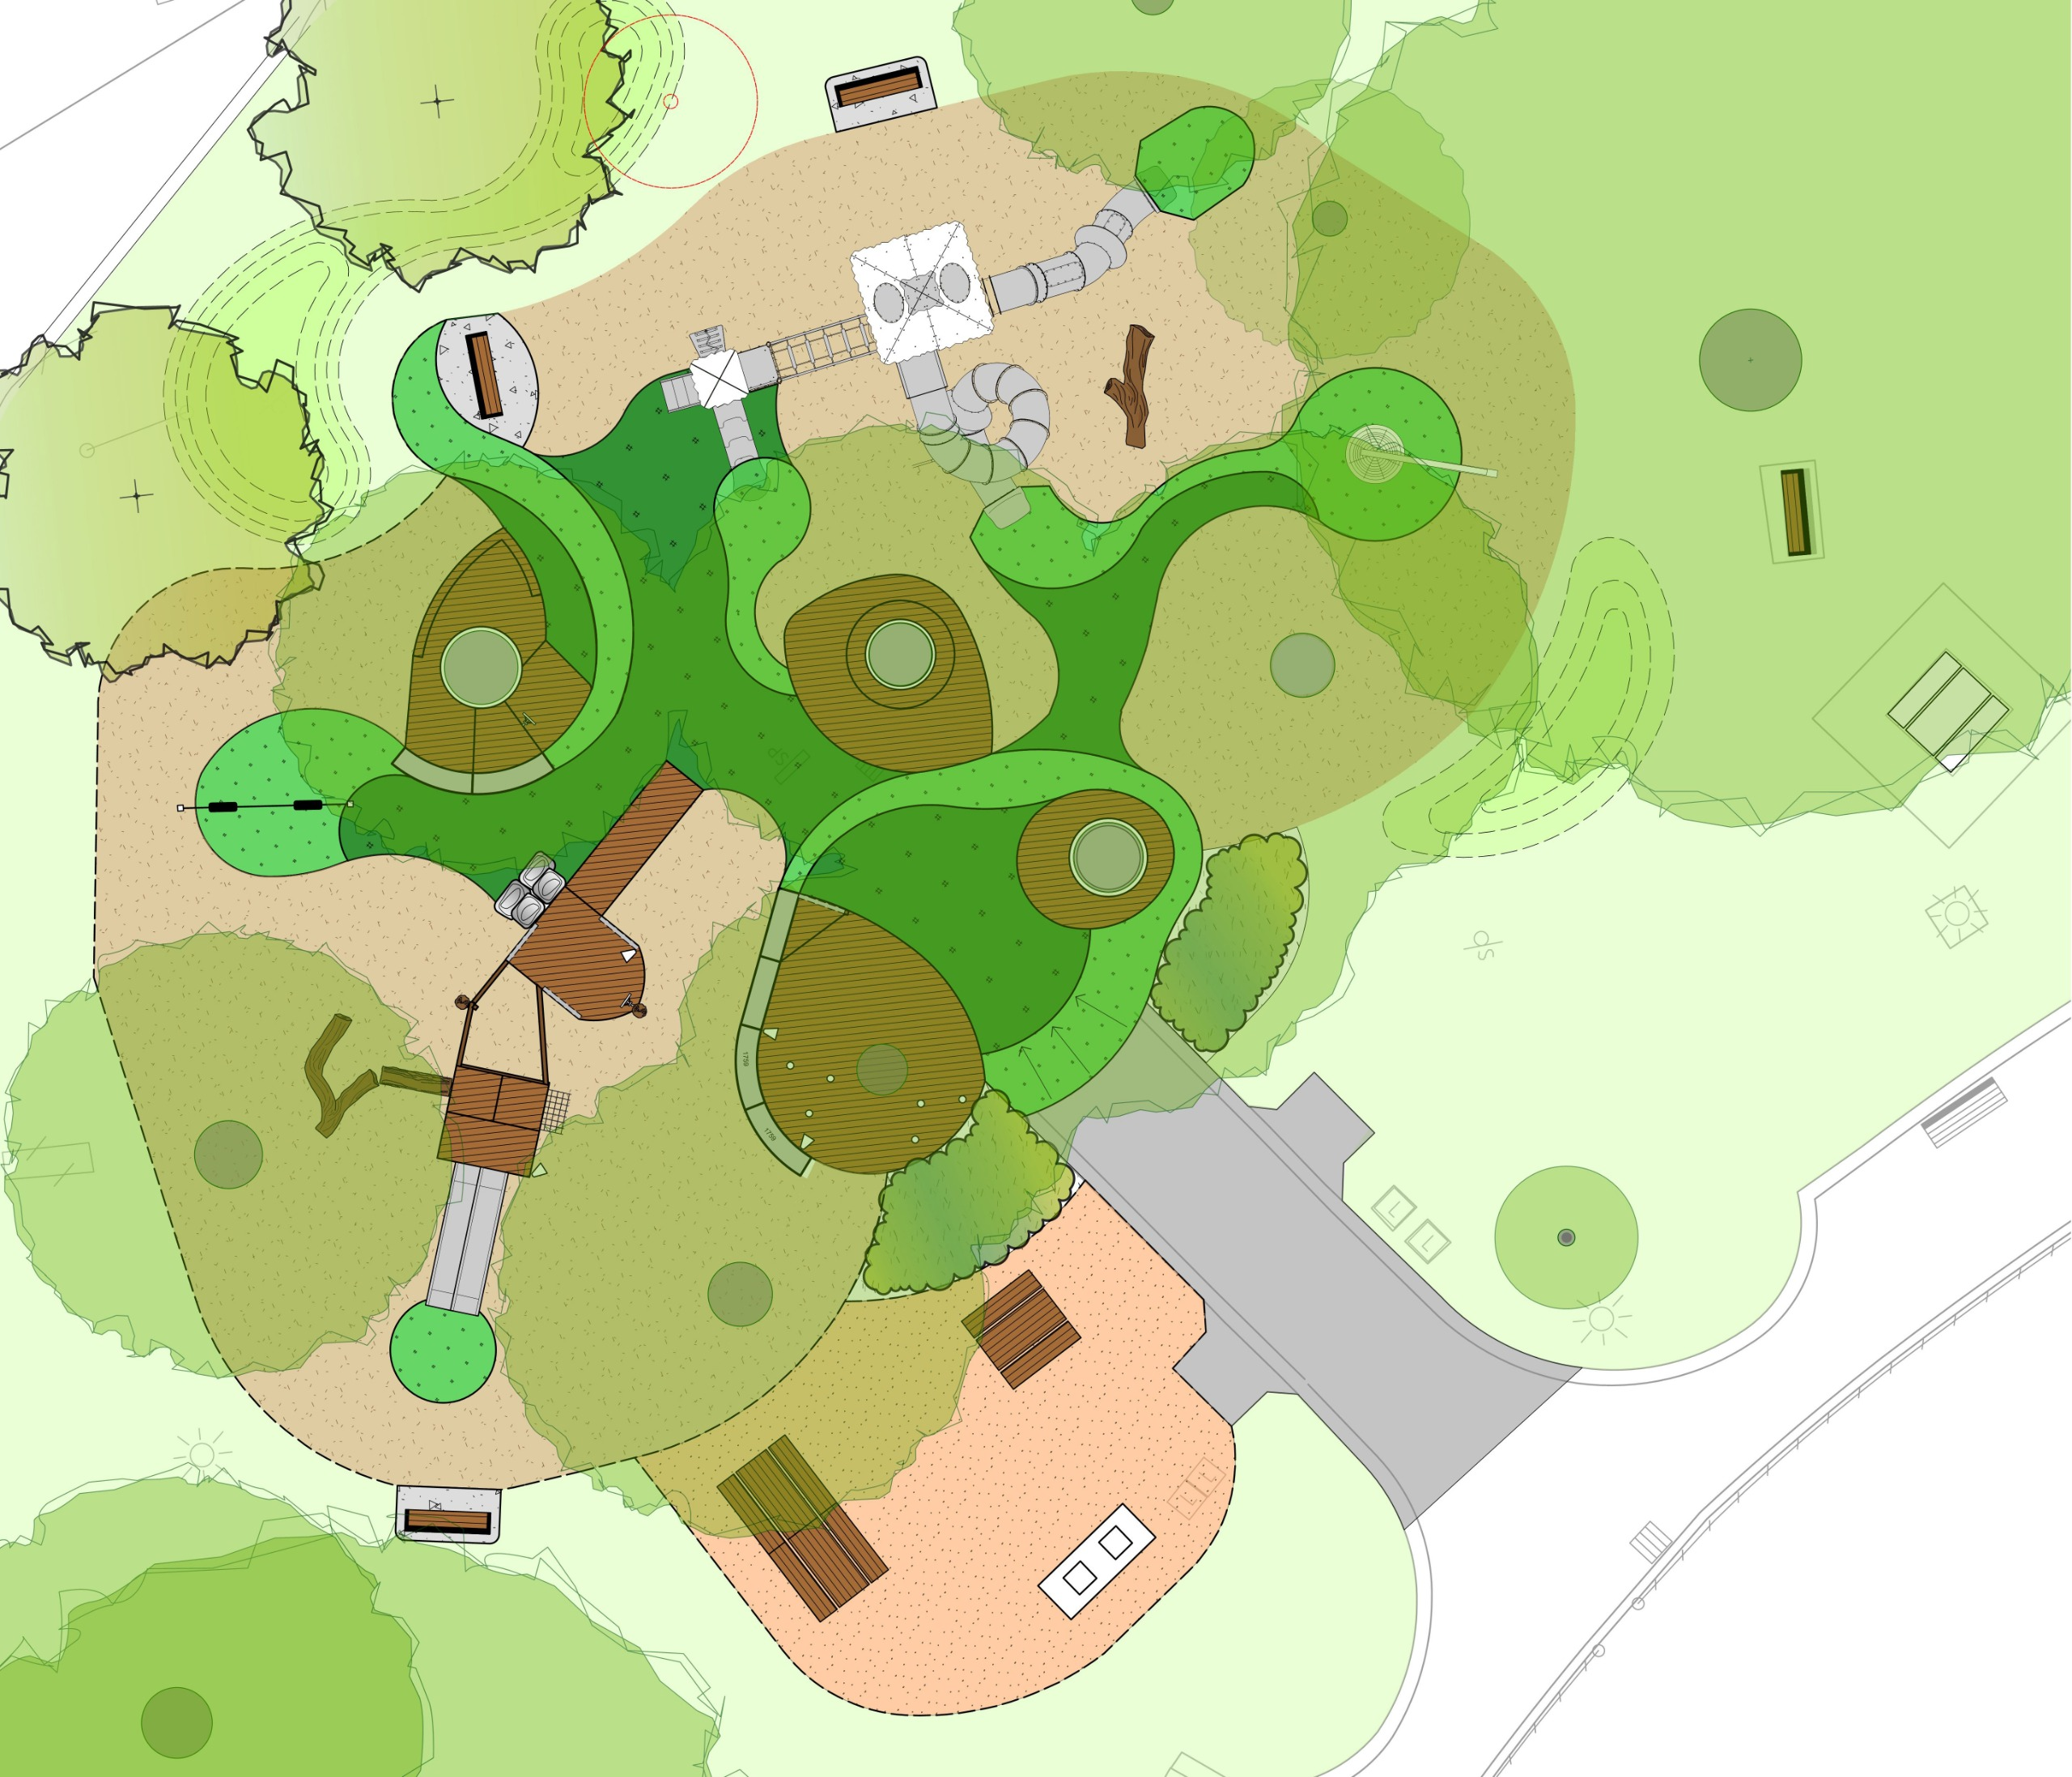 Birds eye view of the proposed playground design for Citizens Park